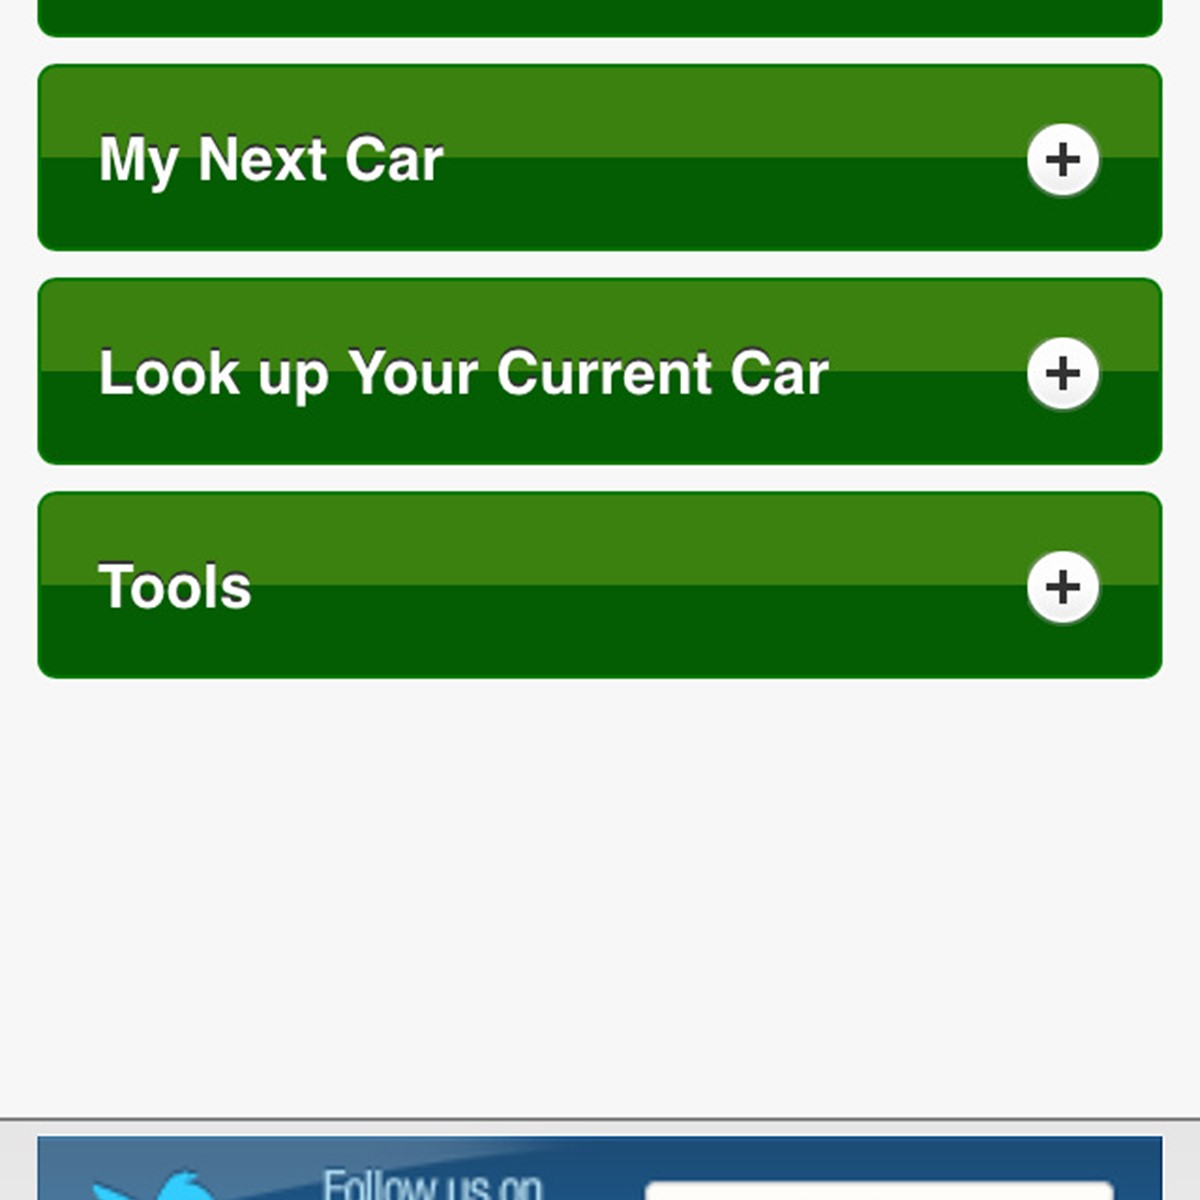 Kelley Blue Book Alternatives and Similar Apps - AlternativeTo.net